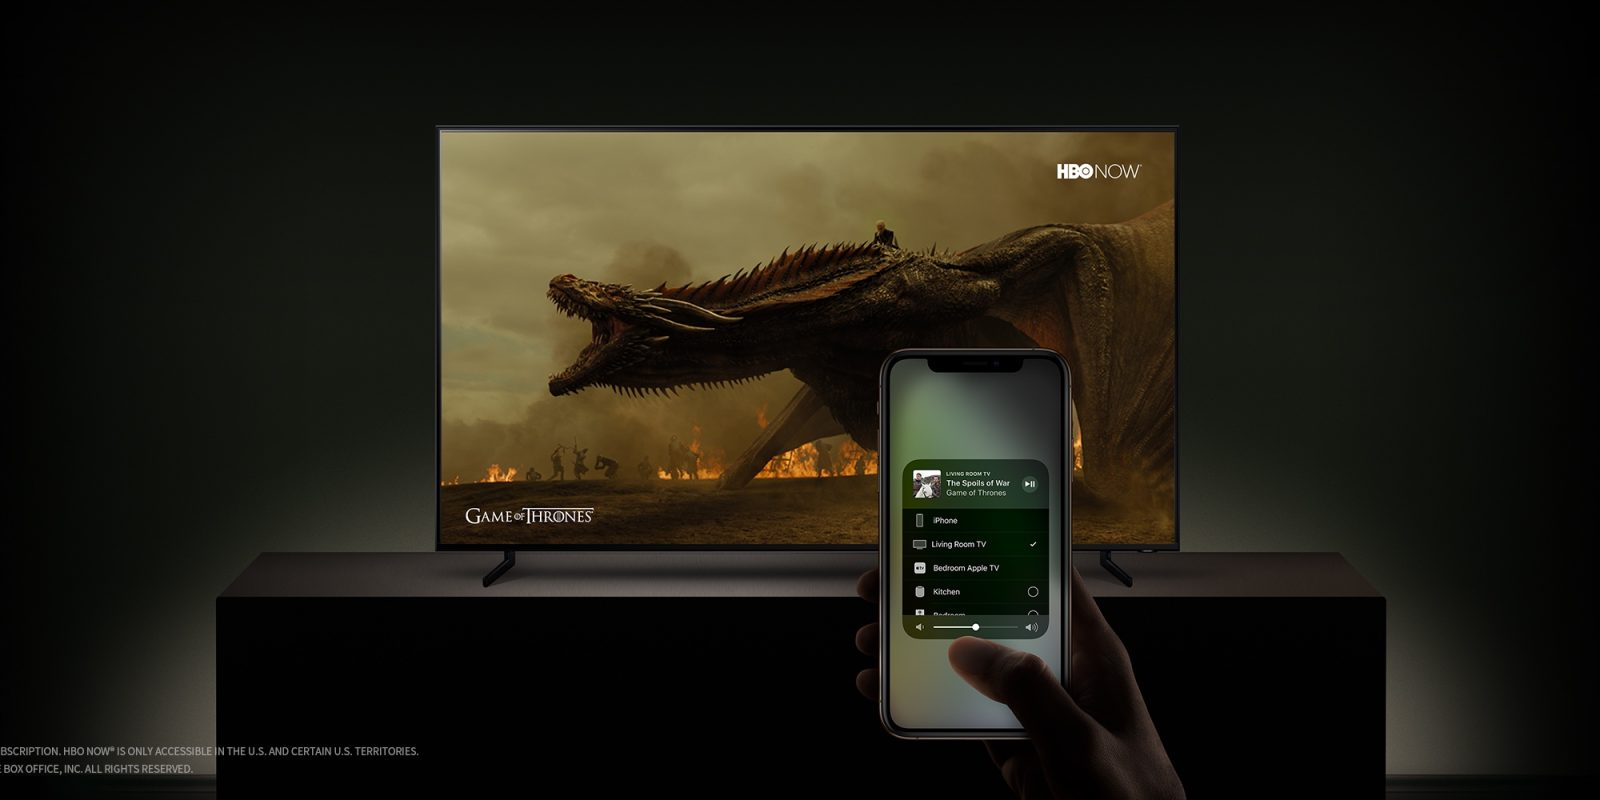 LG bringing AirPlay 2 and HomeKit support with Siri and Home app functionality to its TVs this year